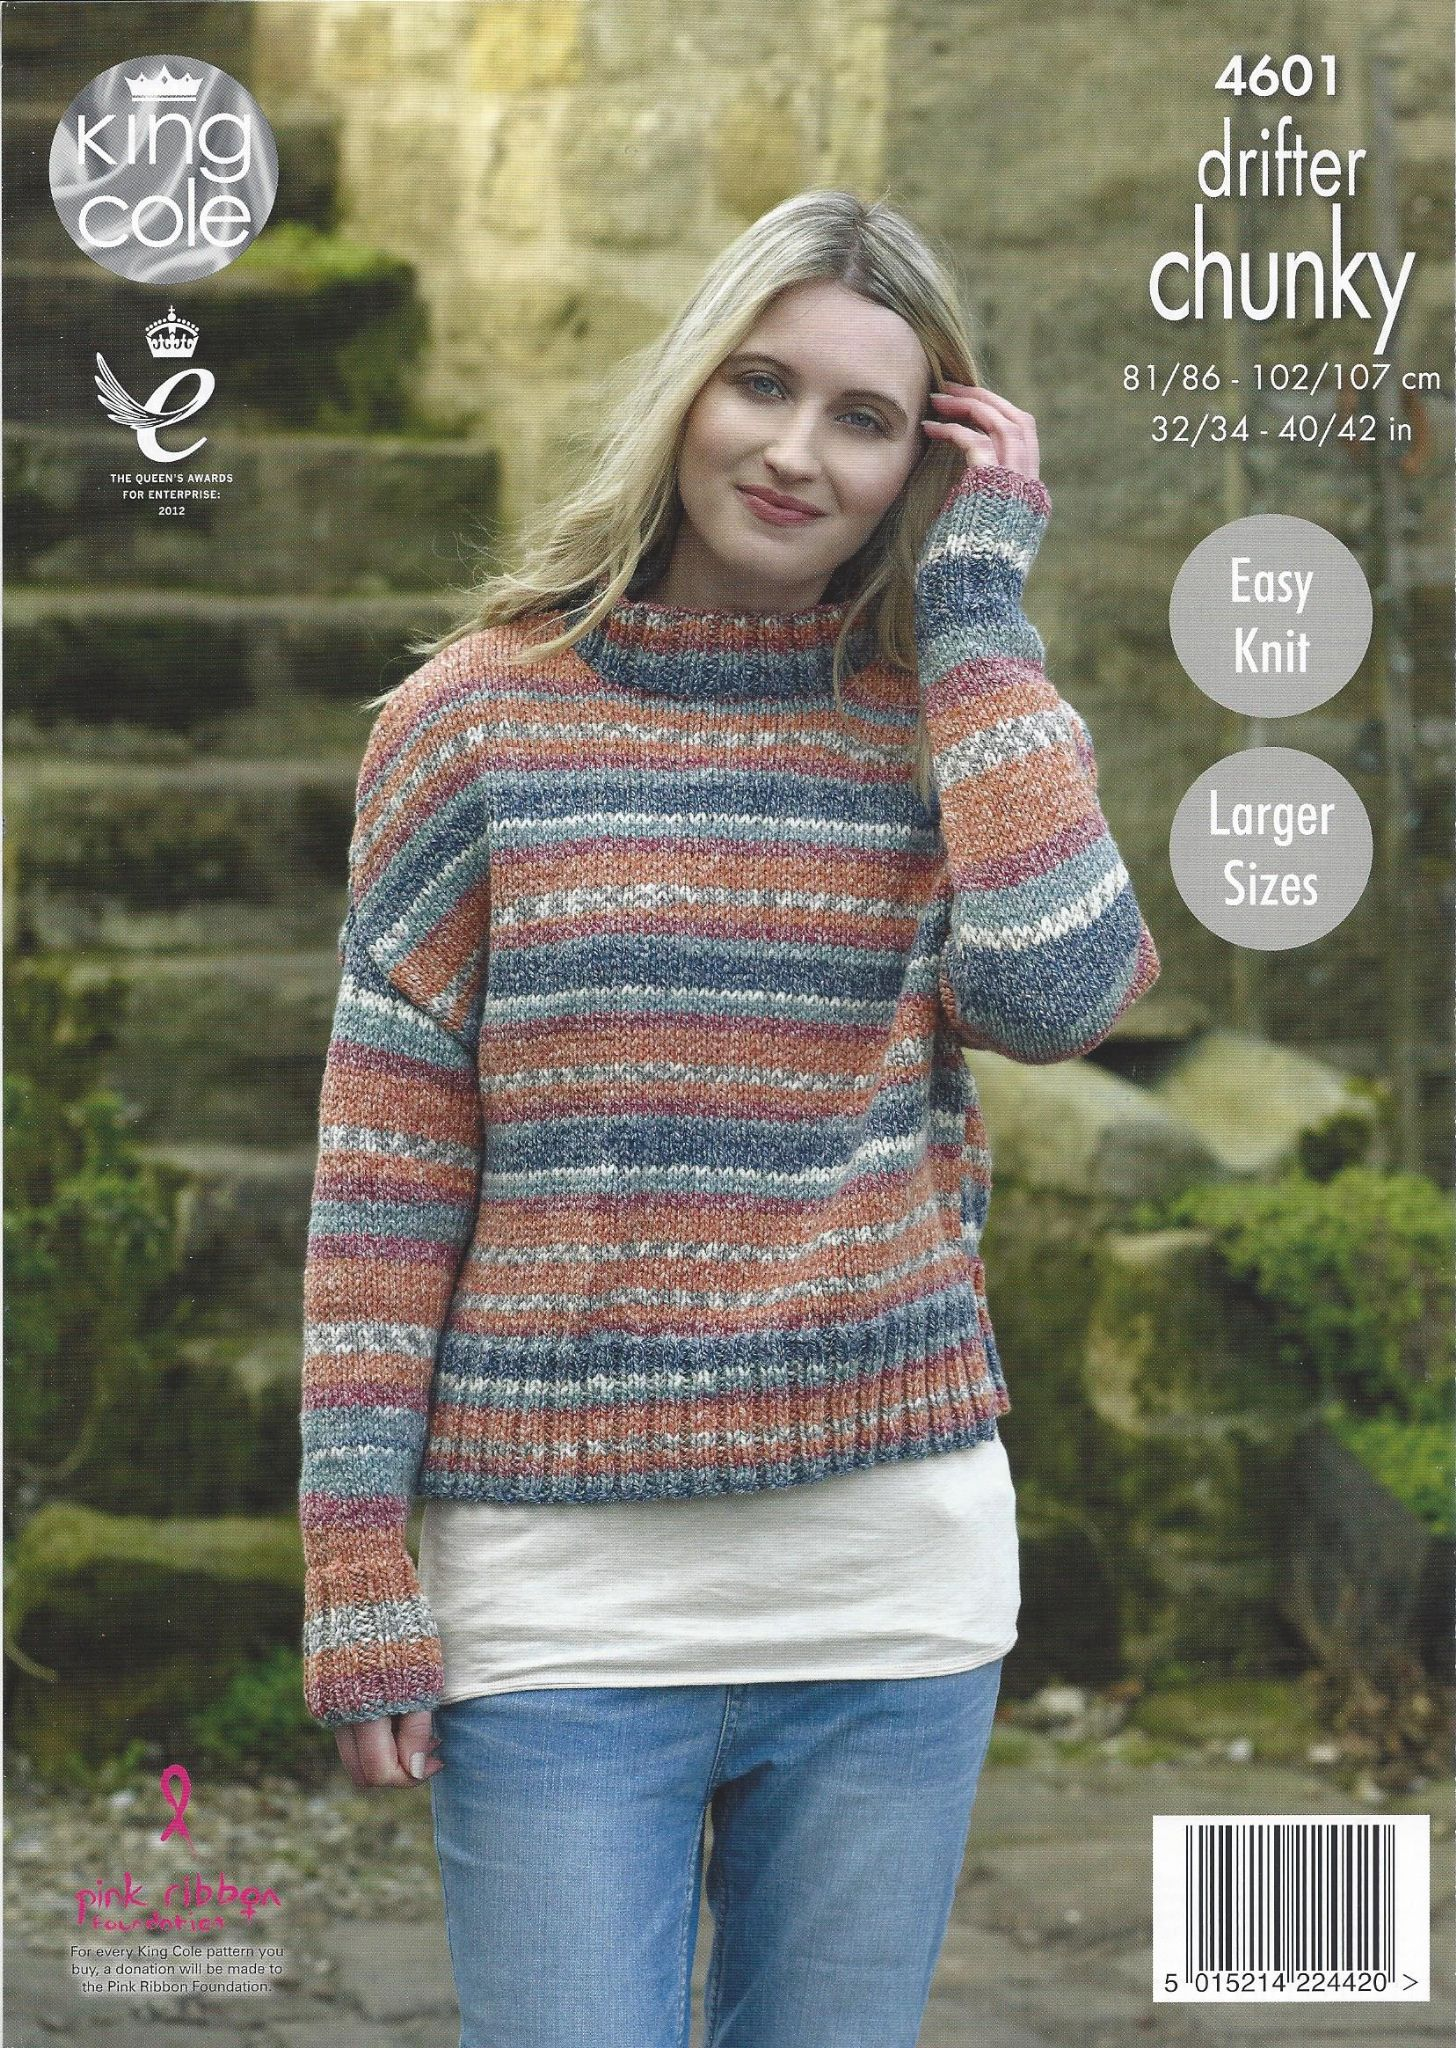 king cole drifter chunky 4601 ladies sweaters knitting